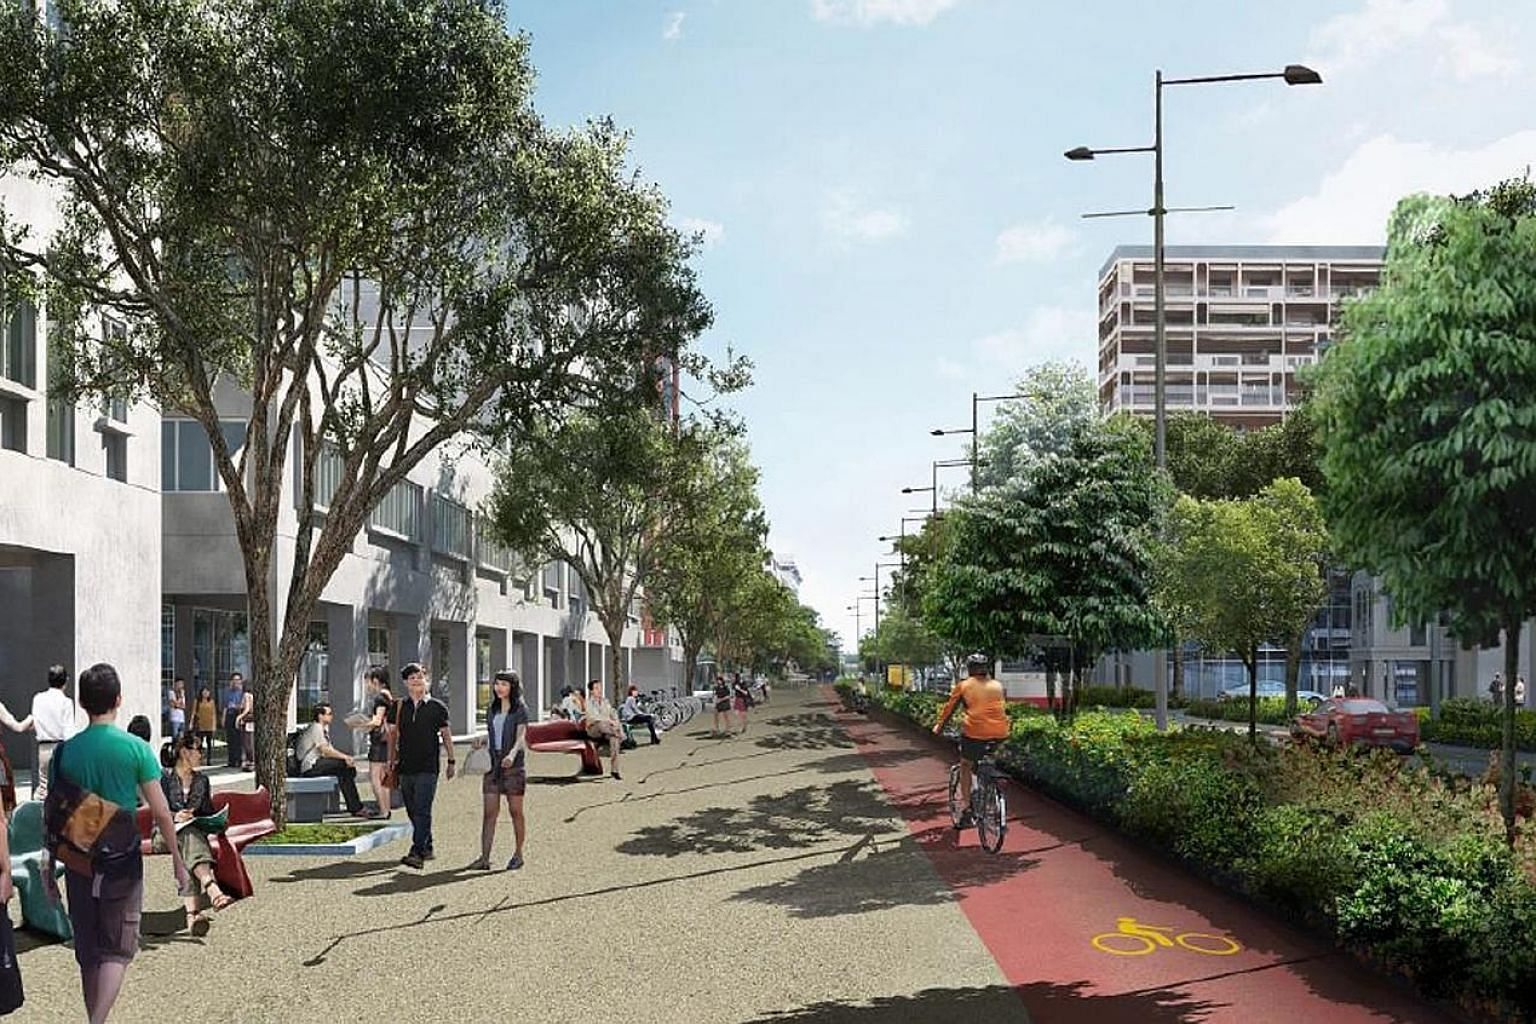 In a drive to make Singapore more car-lite, Bencoolen Street (artist's impression, above) will have wider footpaths and cycling paths when it reopens in the first quarter of next year. A review of the annual growth rate cap on the vehicle population